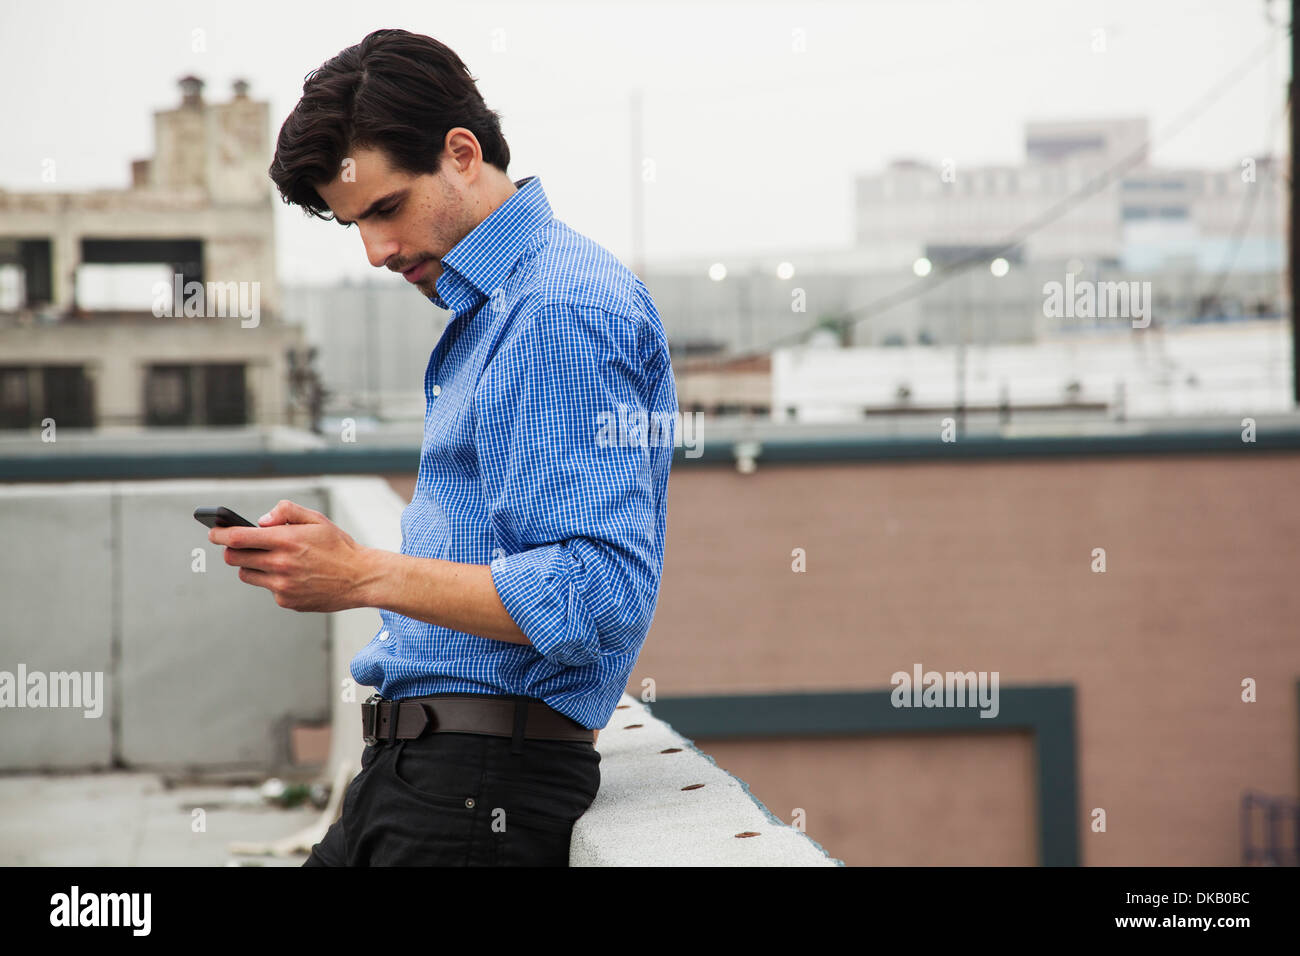 Anxious young man on city rooftop - Stock Image